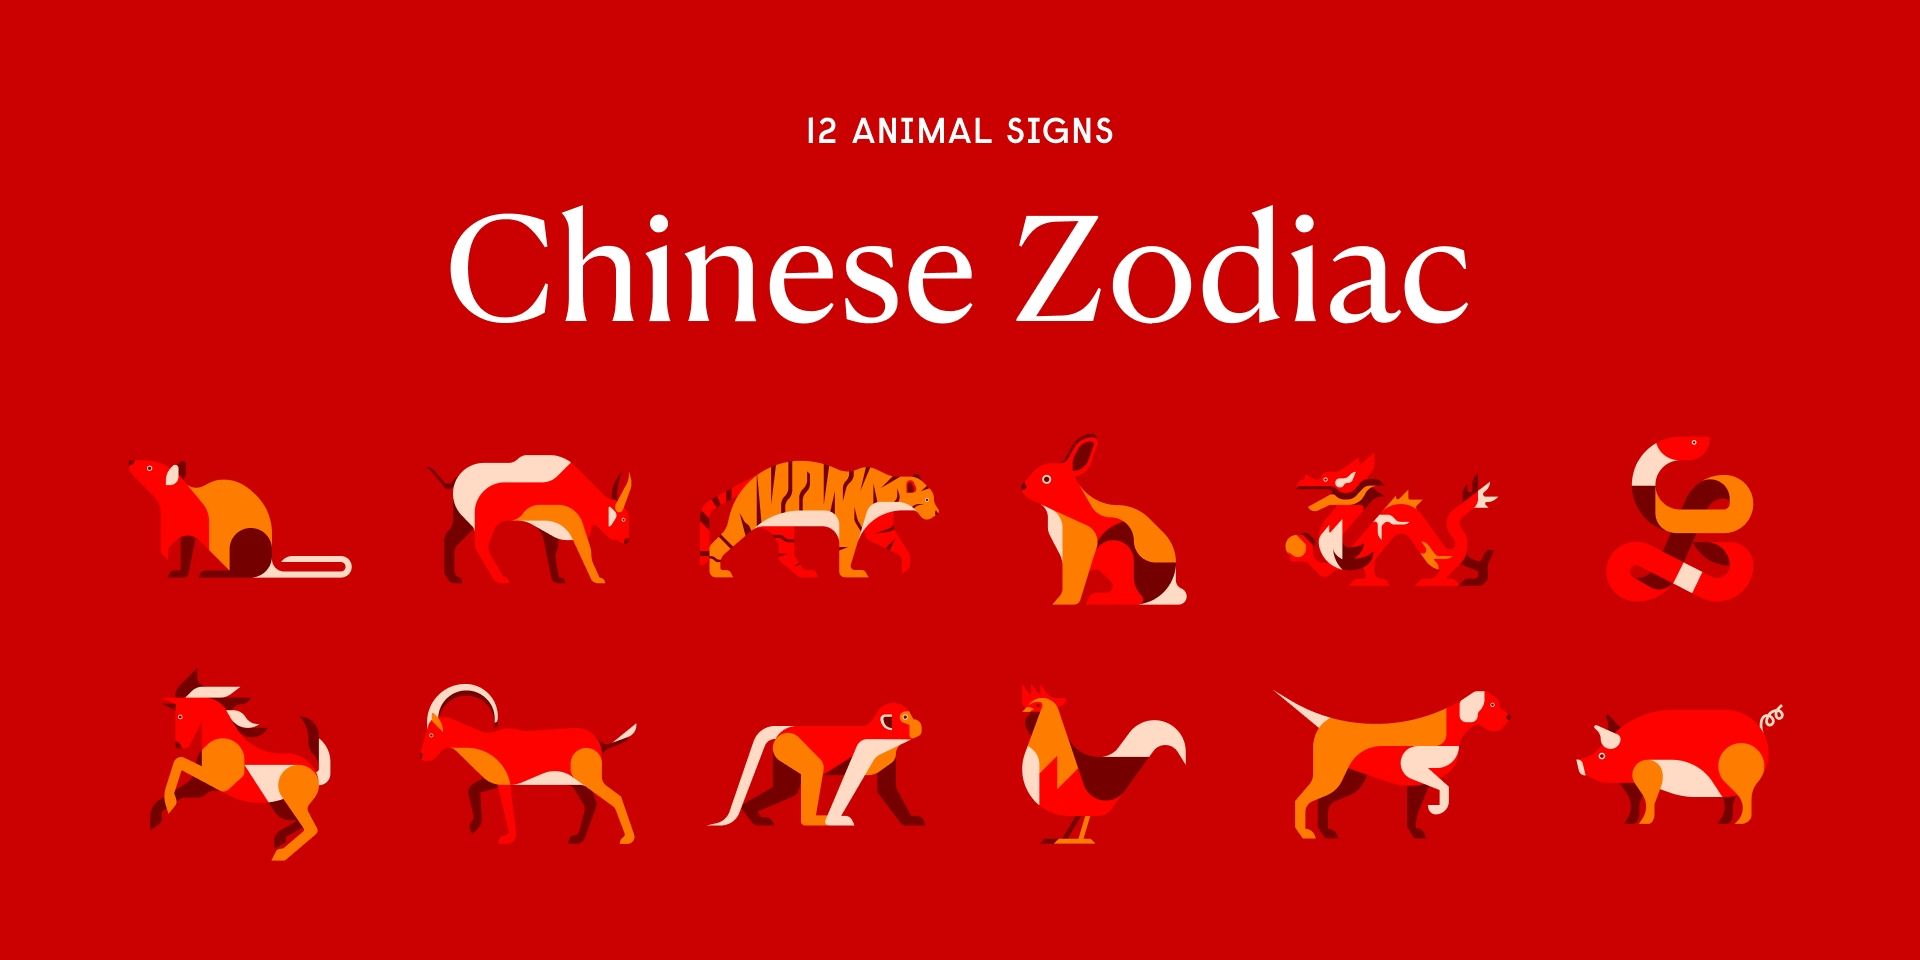 Chinese Zodiac: 12 Animal Signs, Compatibility, Horoscopes Chinese Calendar With Zodiac Signs